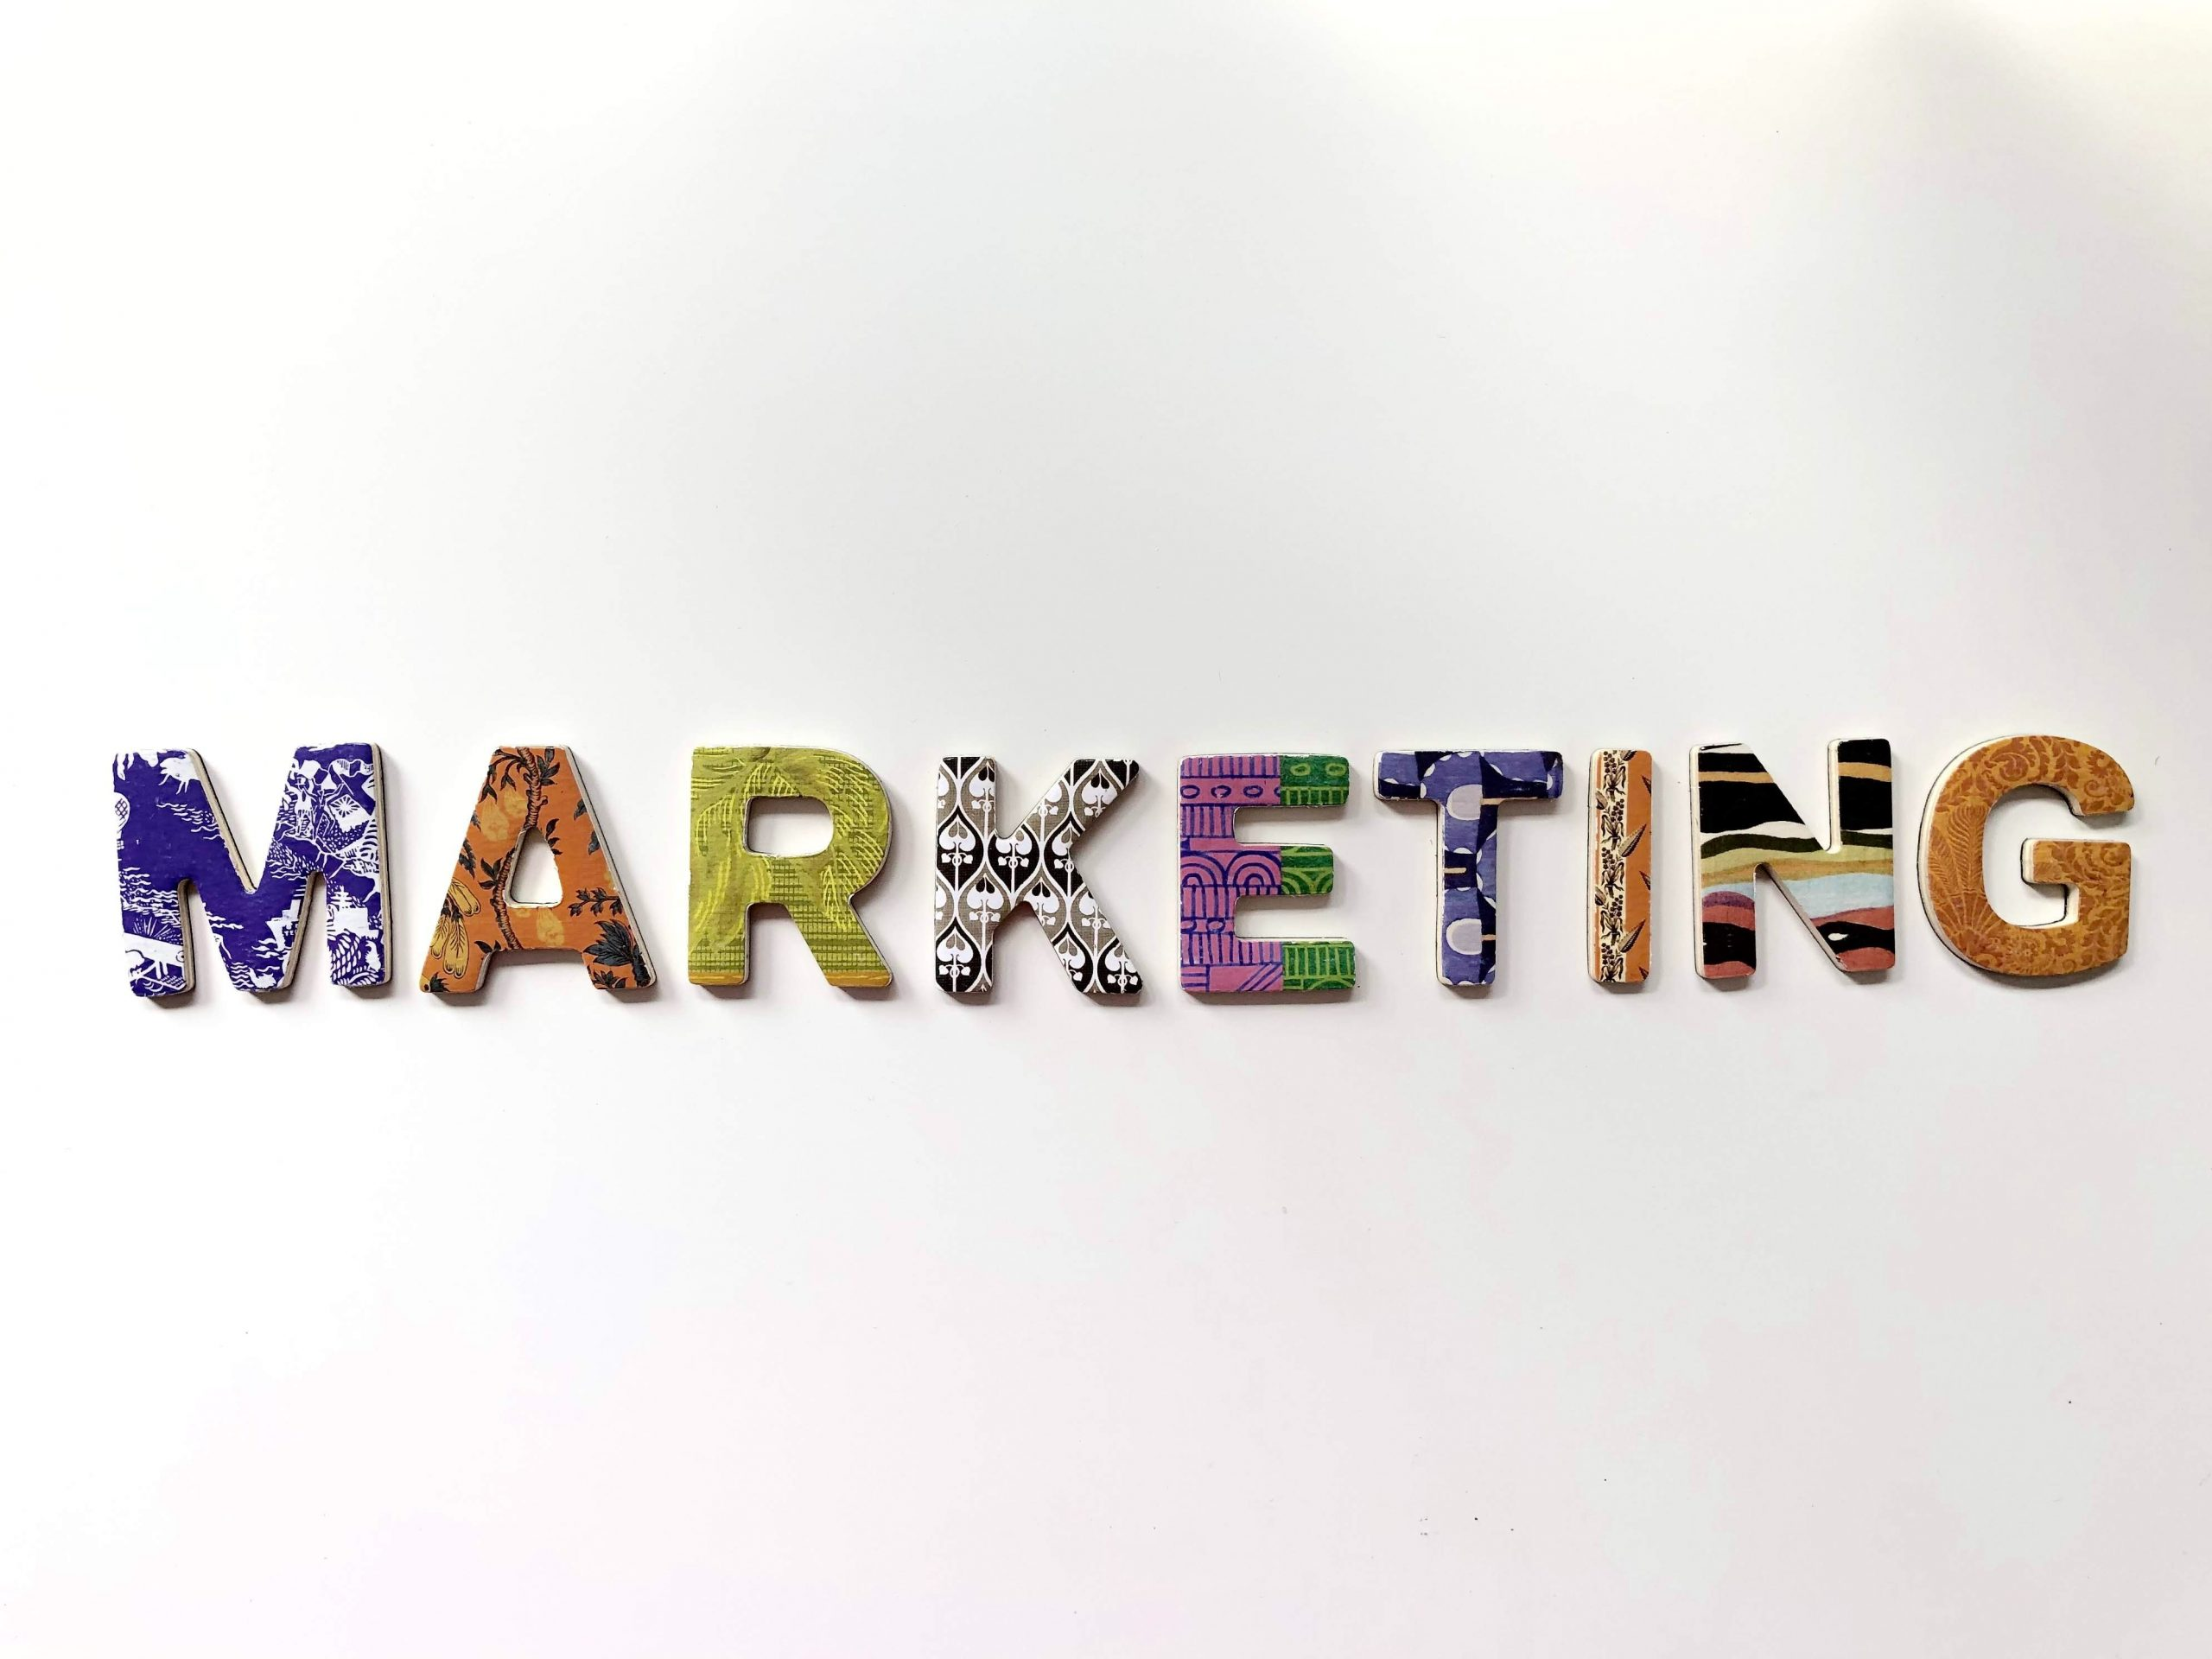 marketing letters on a sign